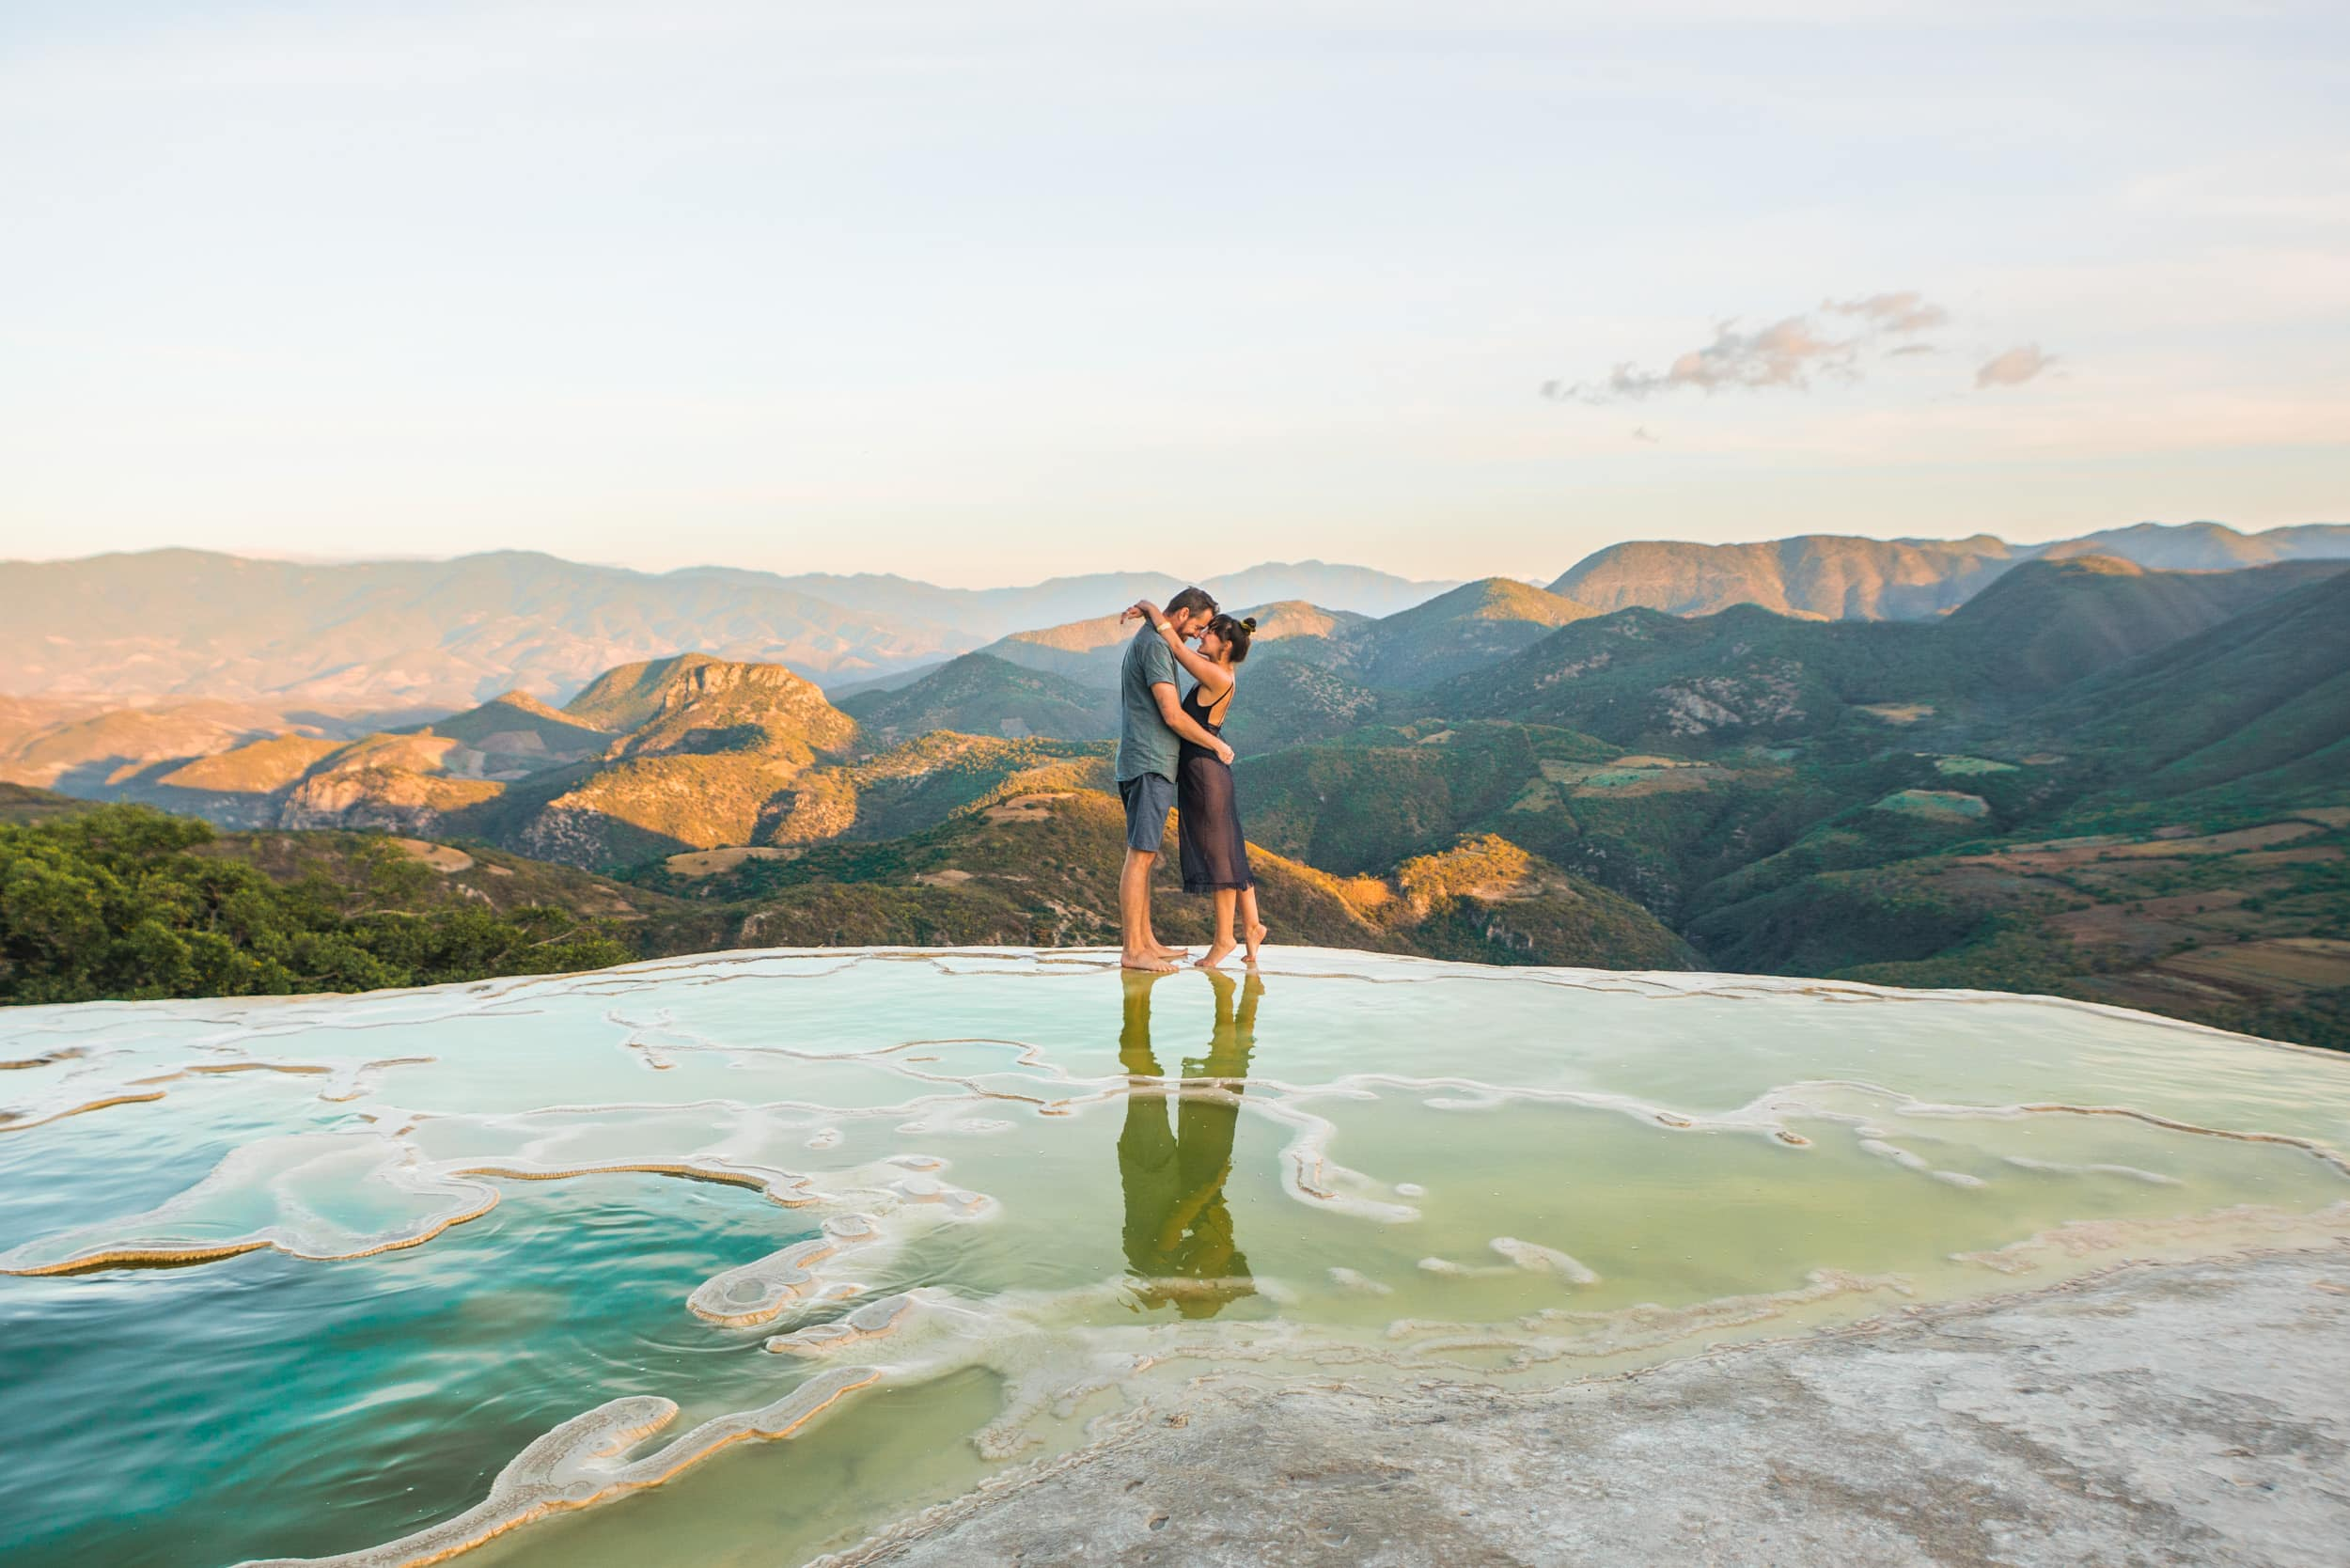 Why We Seek at Hierve el Agua in Oaxaca